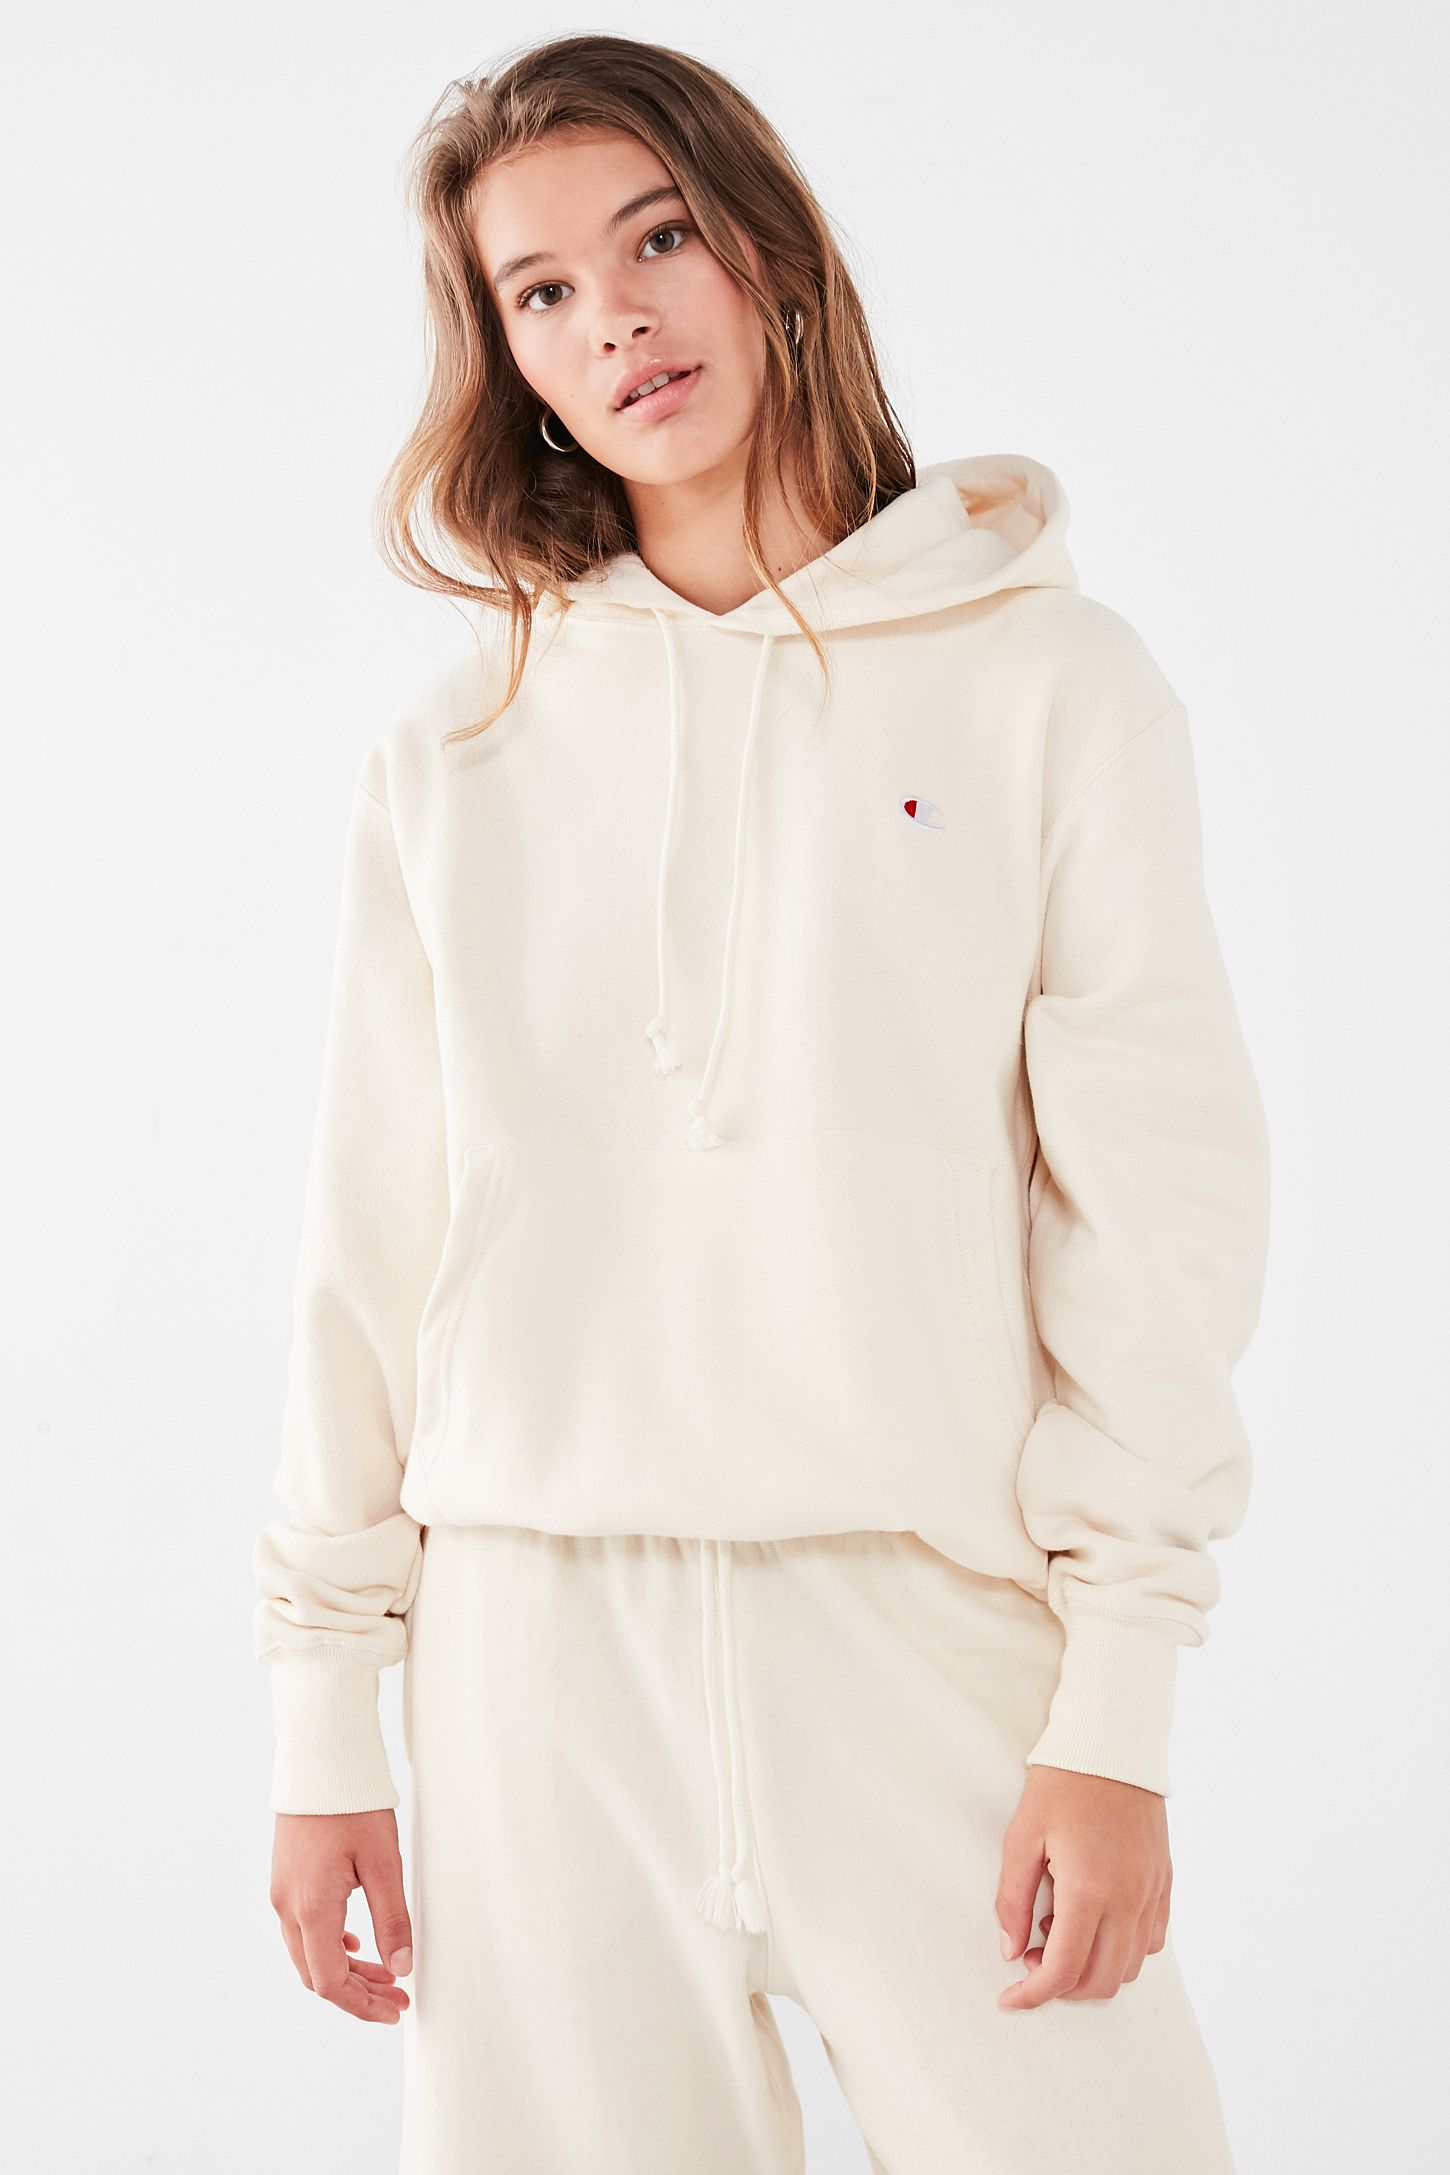 a2bef0295fe5 Get Our Emails. Sign up to receive Urban Outfitters ...